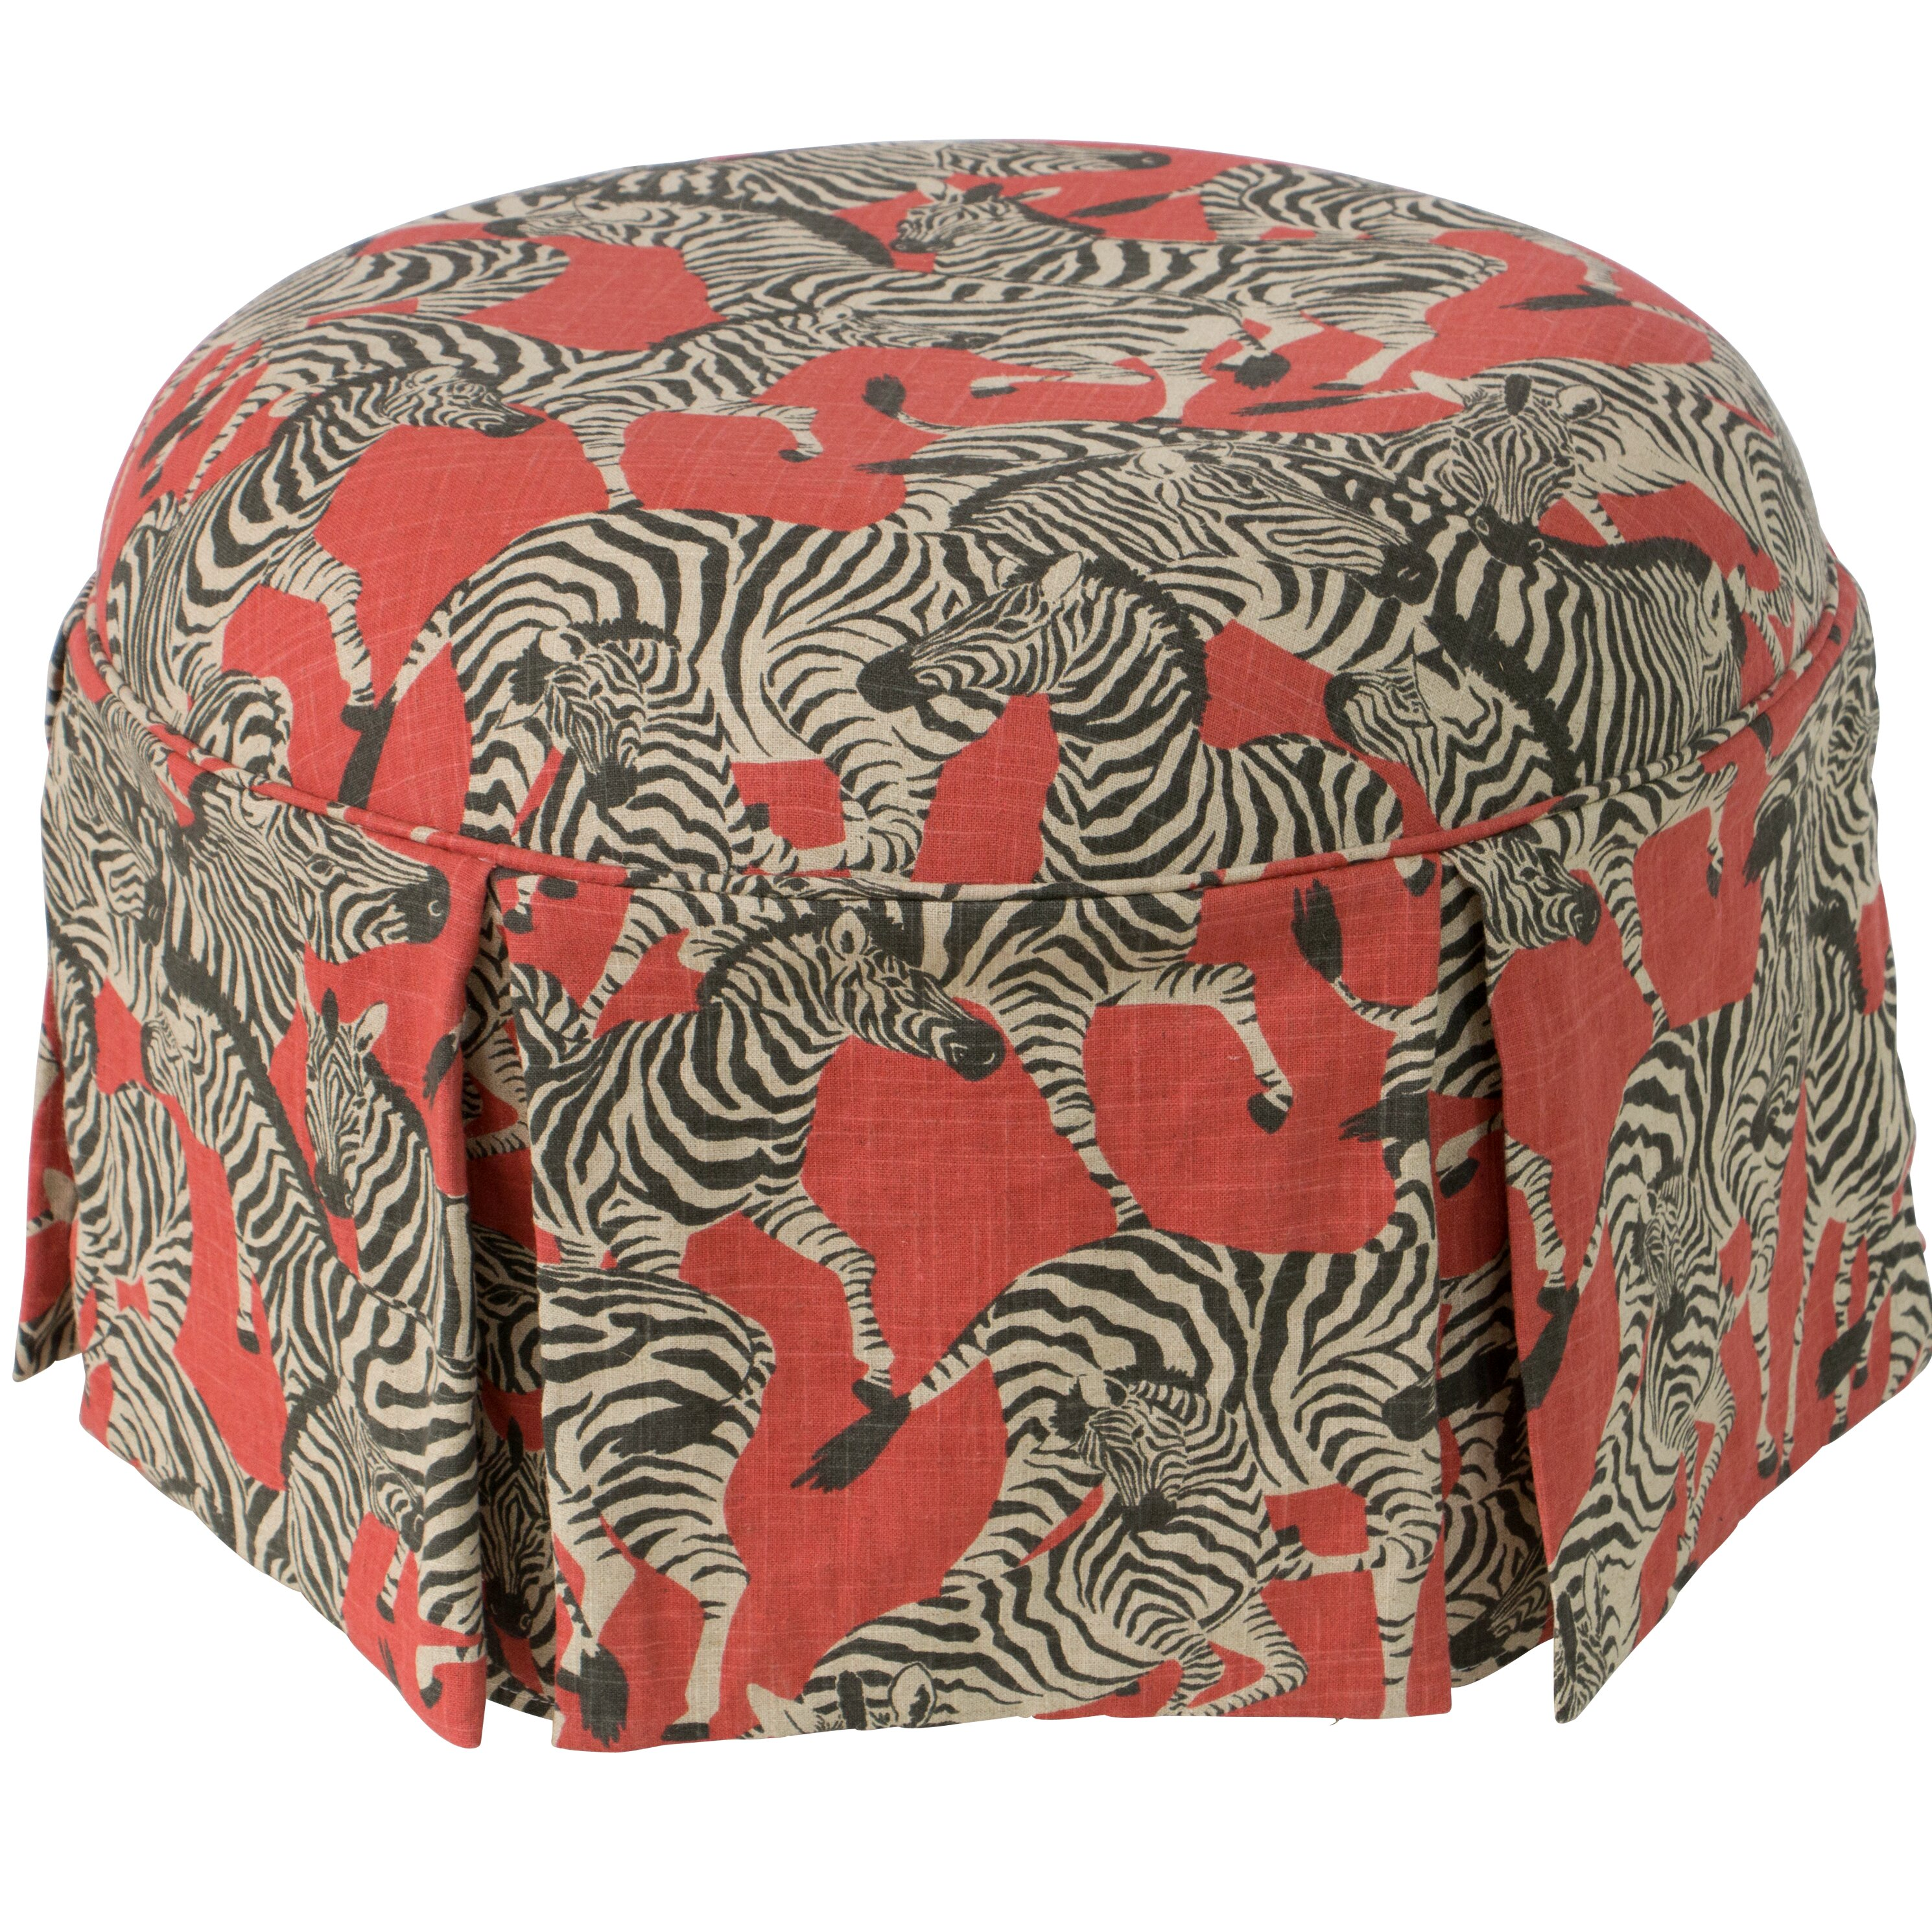 The Dining Rooms Oswestry: Mercer41 Oswestry Round Skirted Ottoman